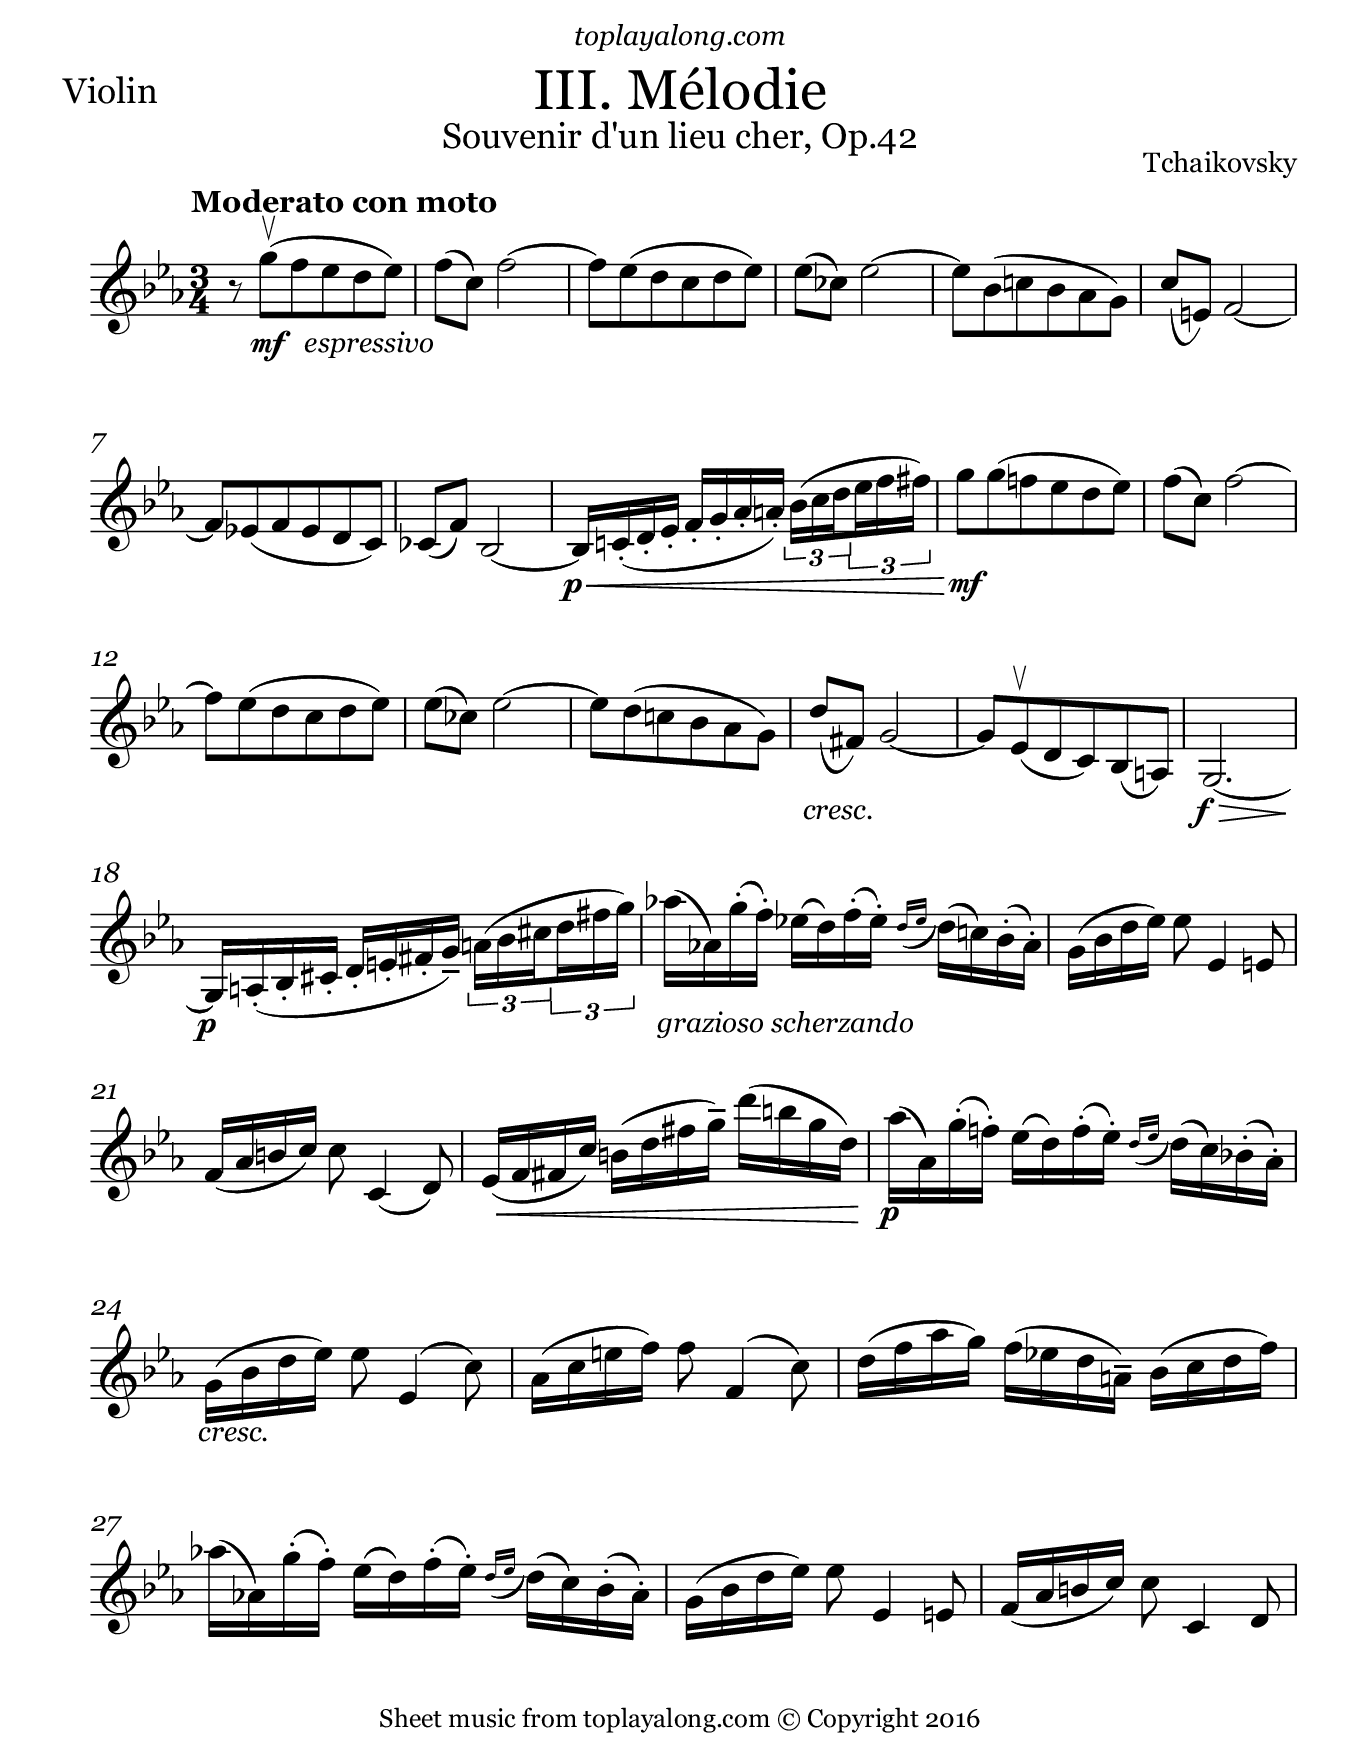 Mélodie Op. 42 No. 3 by Tchaikovsky. Sheet music for Violin, page 1.